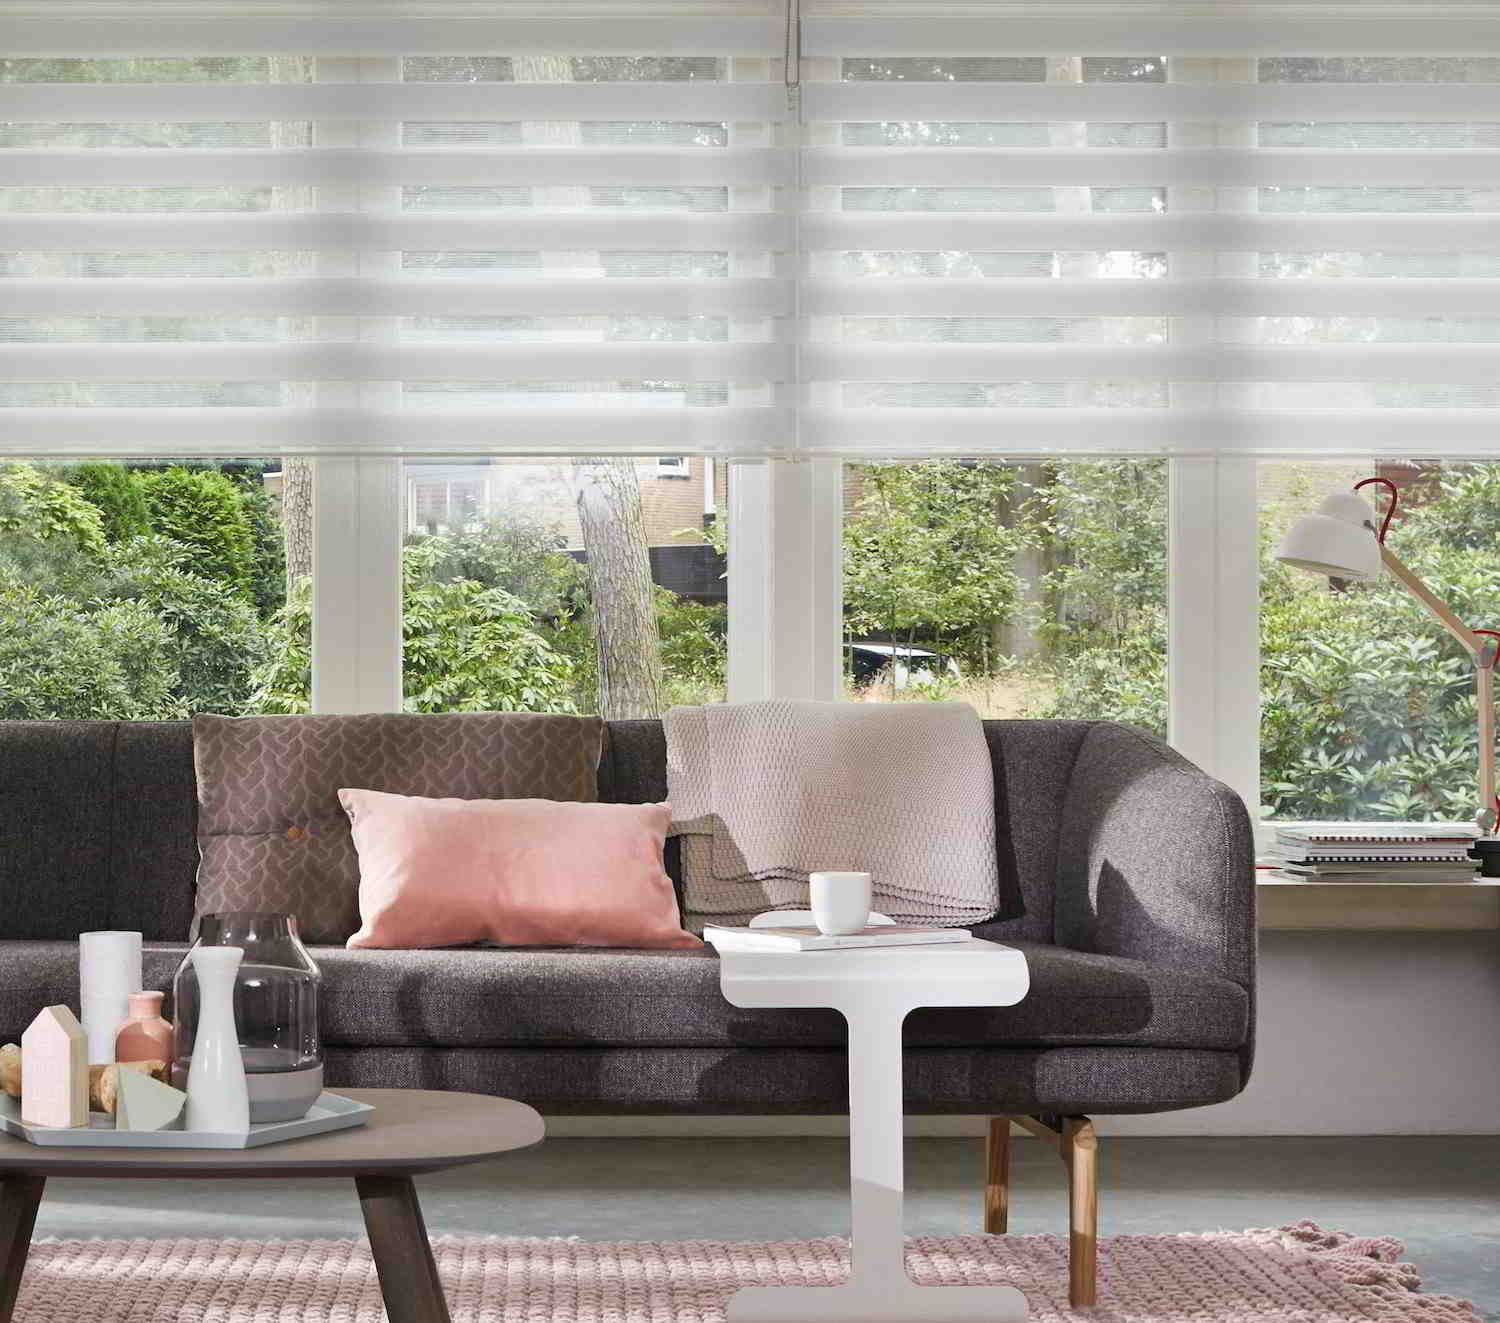 Modern curtains with a mix of styles